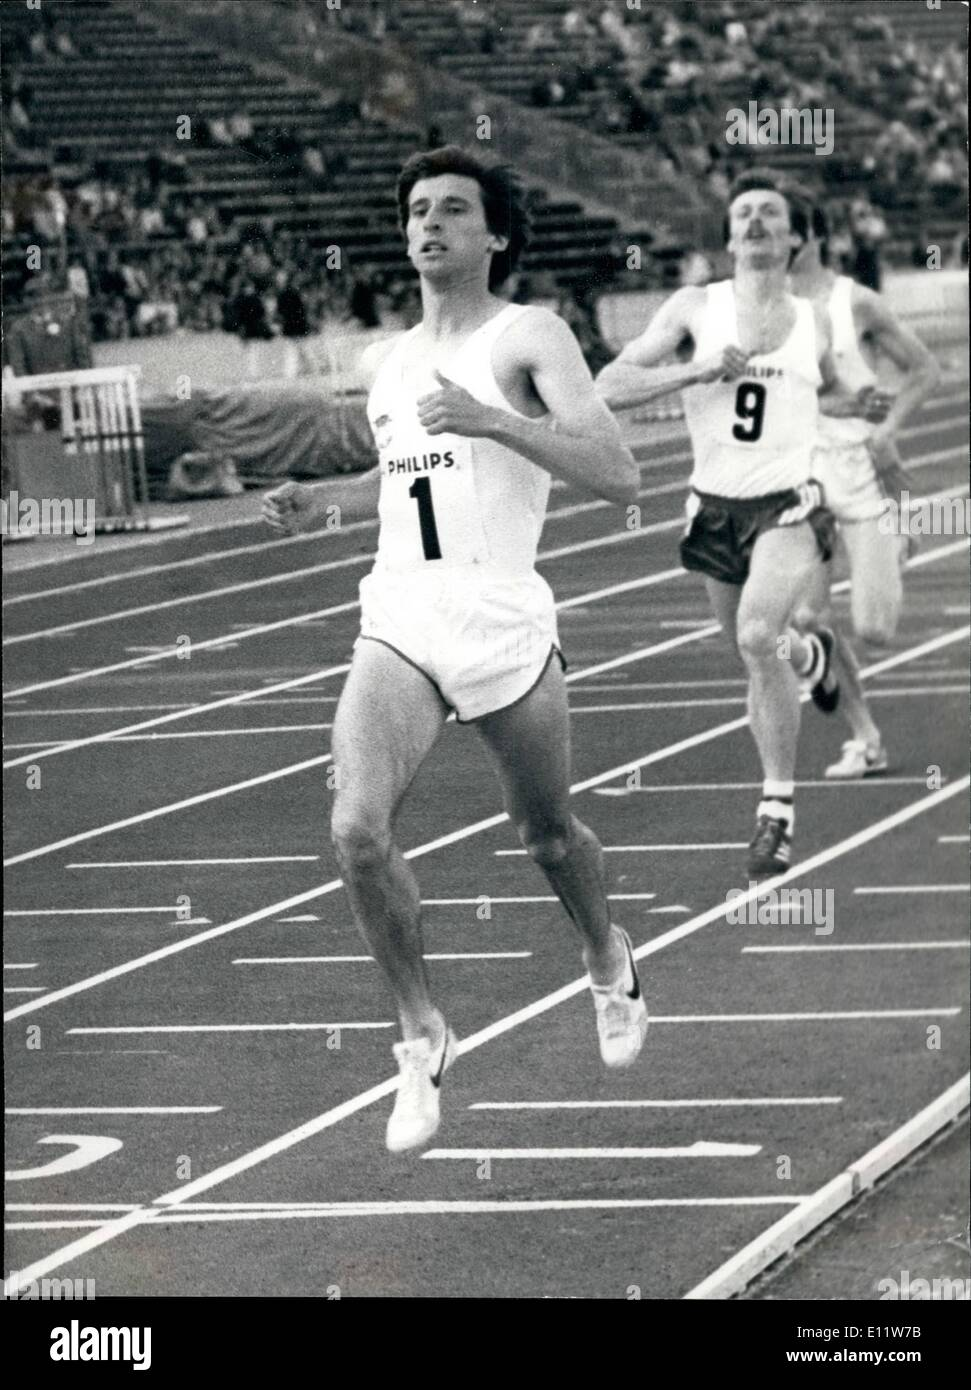 May 05, 1980 - SEBASTIAN COE WINS 800METRES AT CRYSTAL PALACE Sebastian. Coe cruises to victory in the 800 Metres in the Philips Nilht of Athletics at the Crystal Palase,in London last night in his buildup to the Mosaow Olympias, - Stock Image